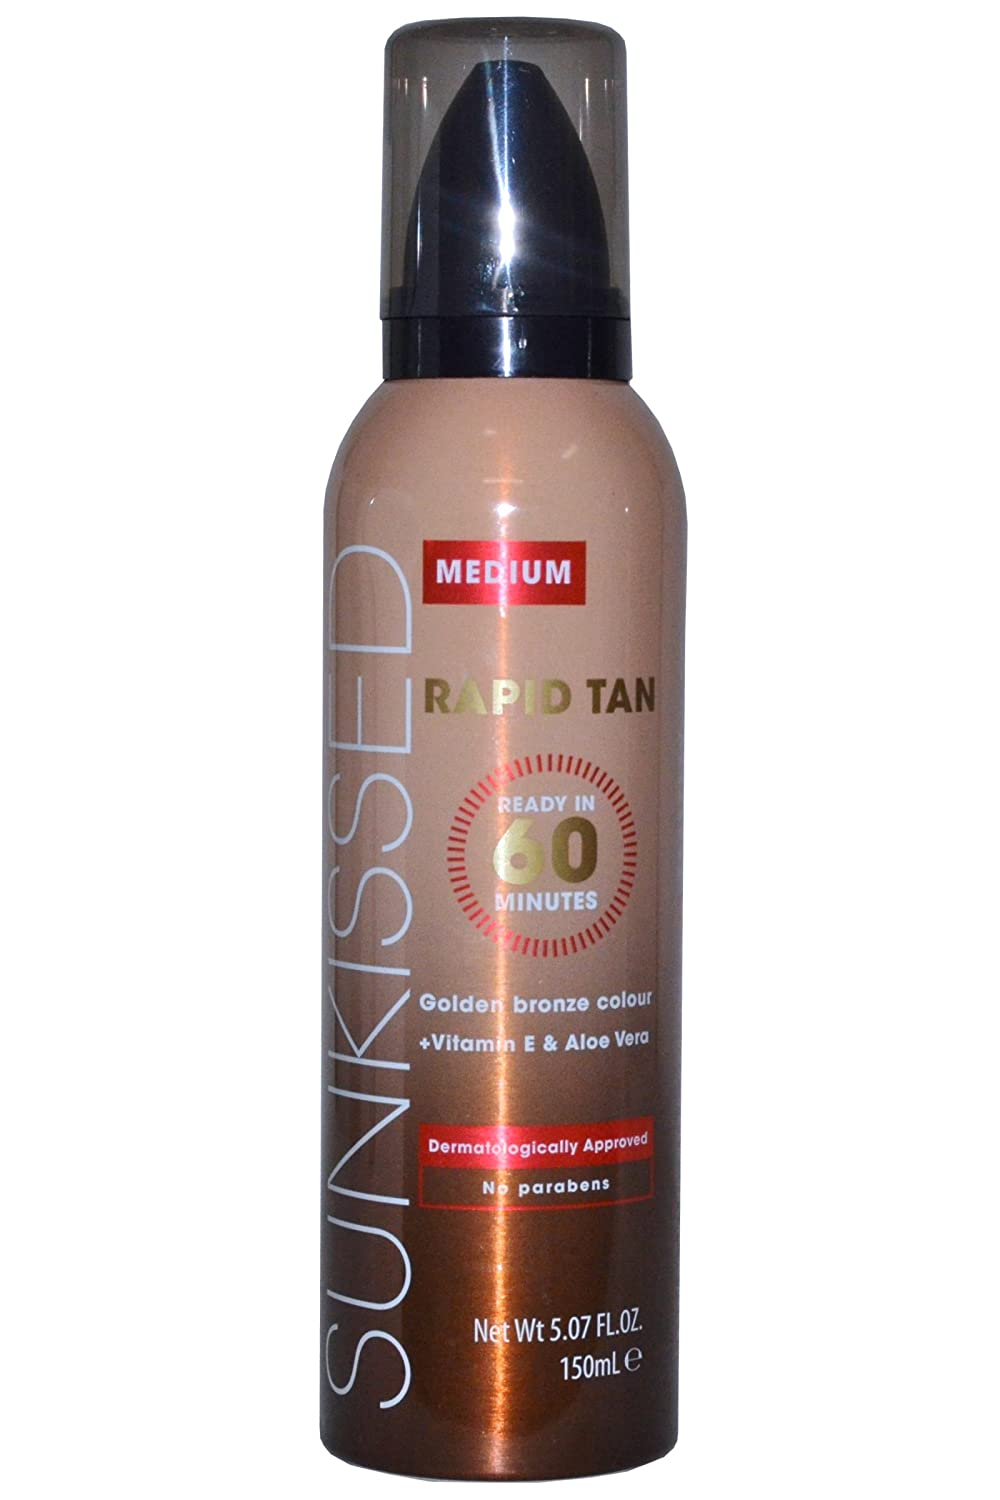 Sunkissed Rapid Tan Mousse 5.1oz (150ml) Medium by Sunkissed 26064